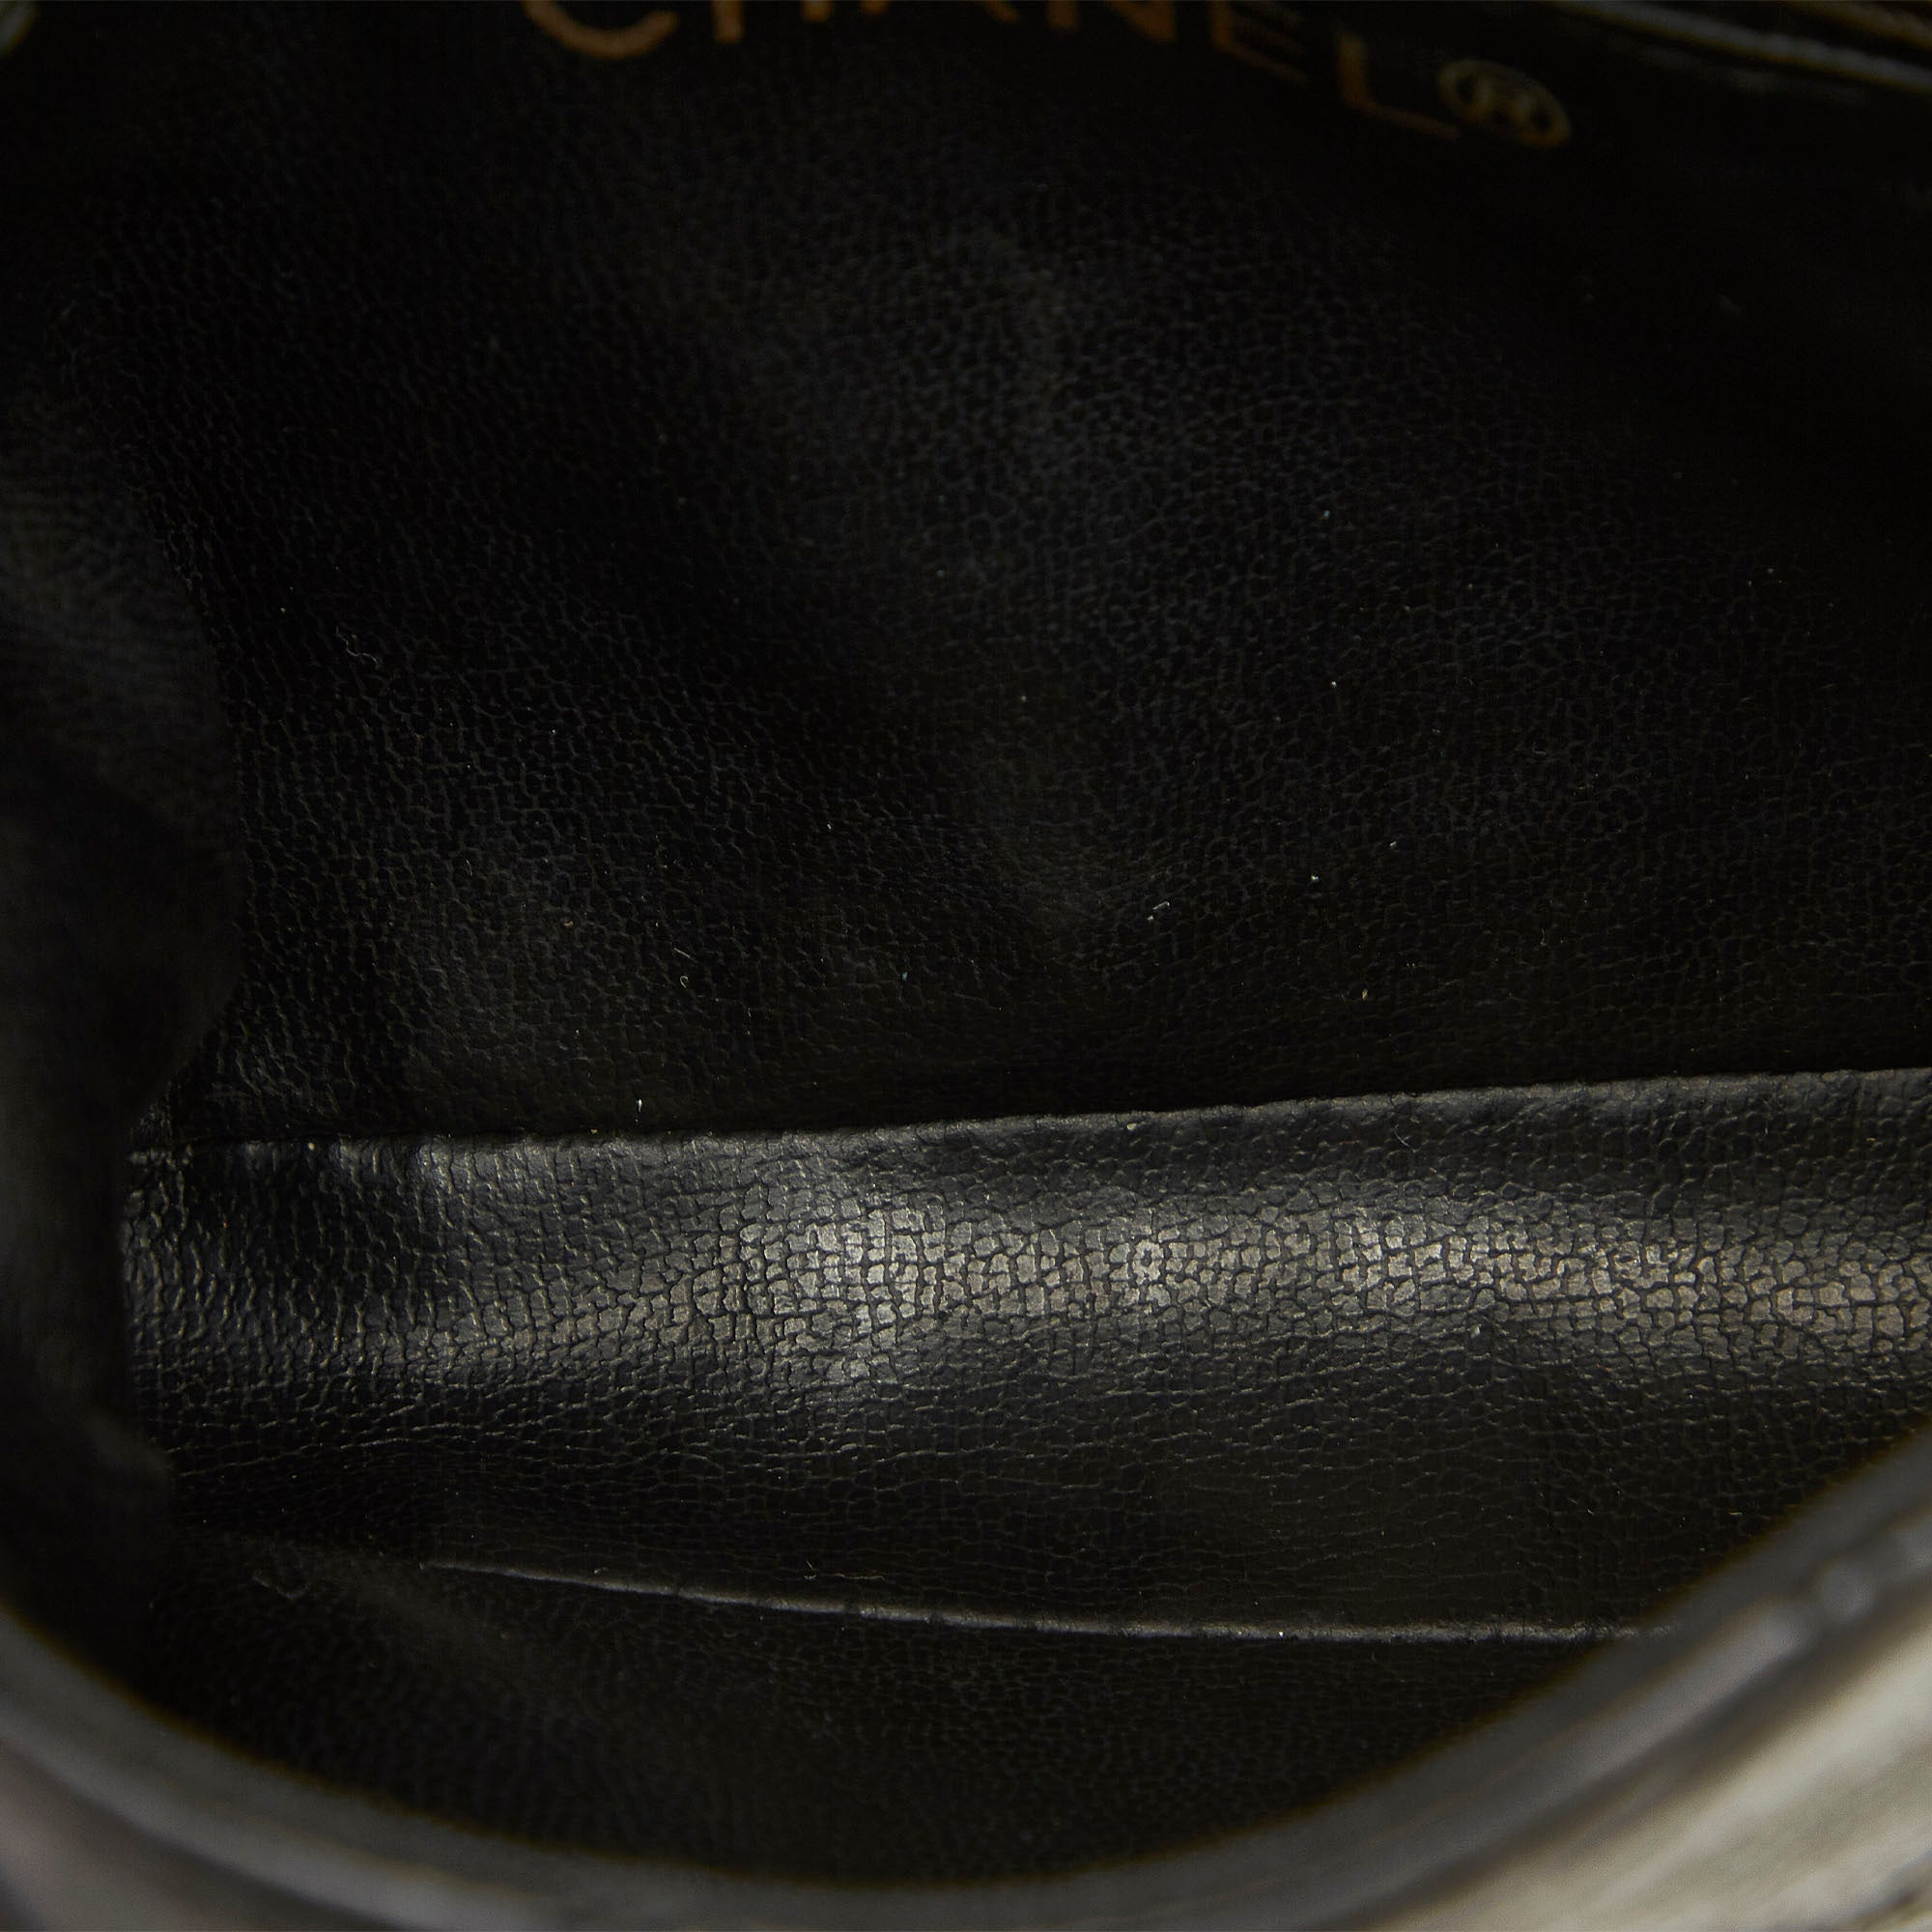 Chanel Black Matelasse Lambskin Leather Belt Bag